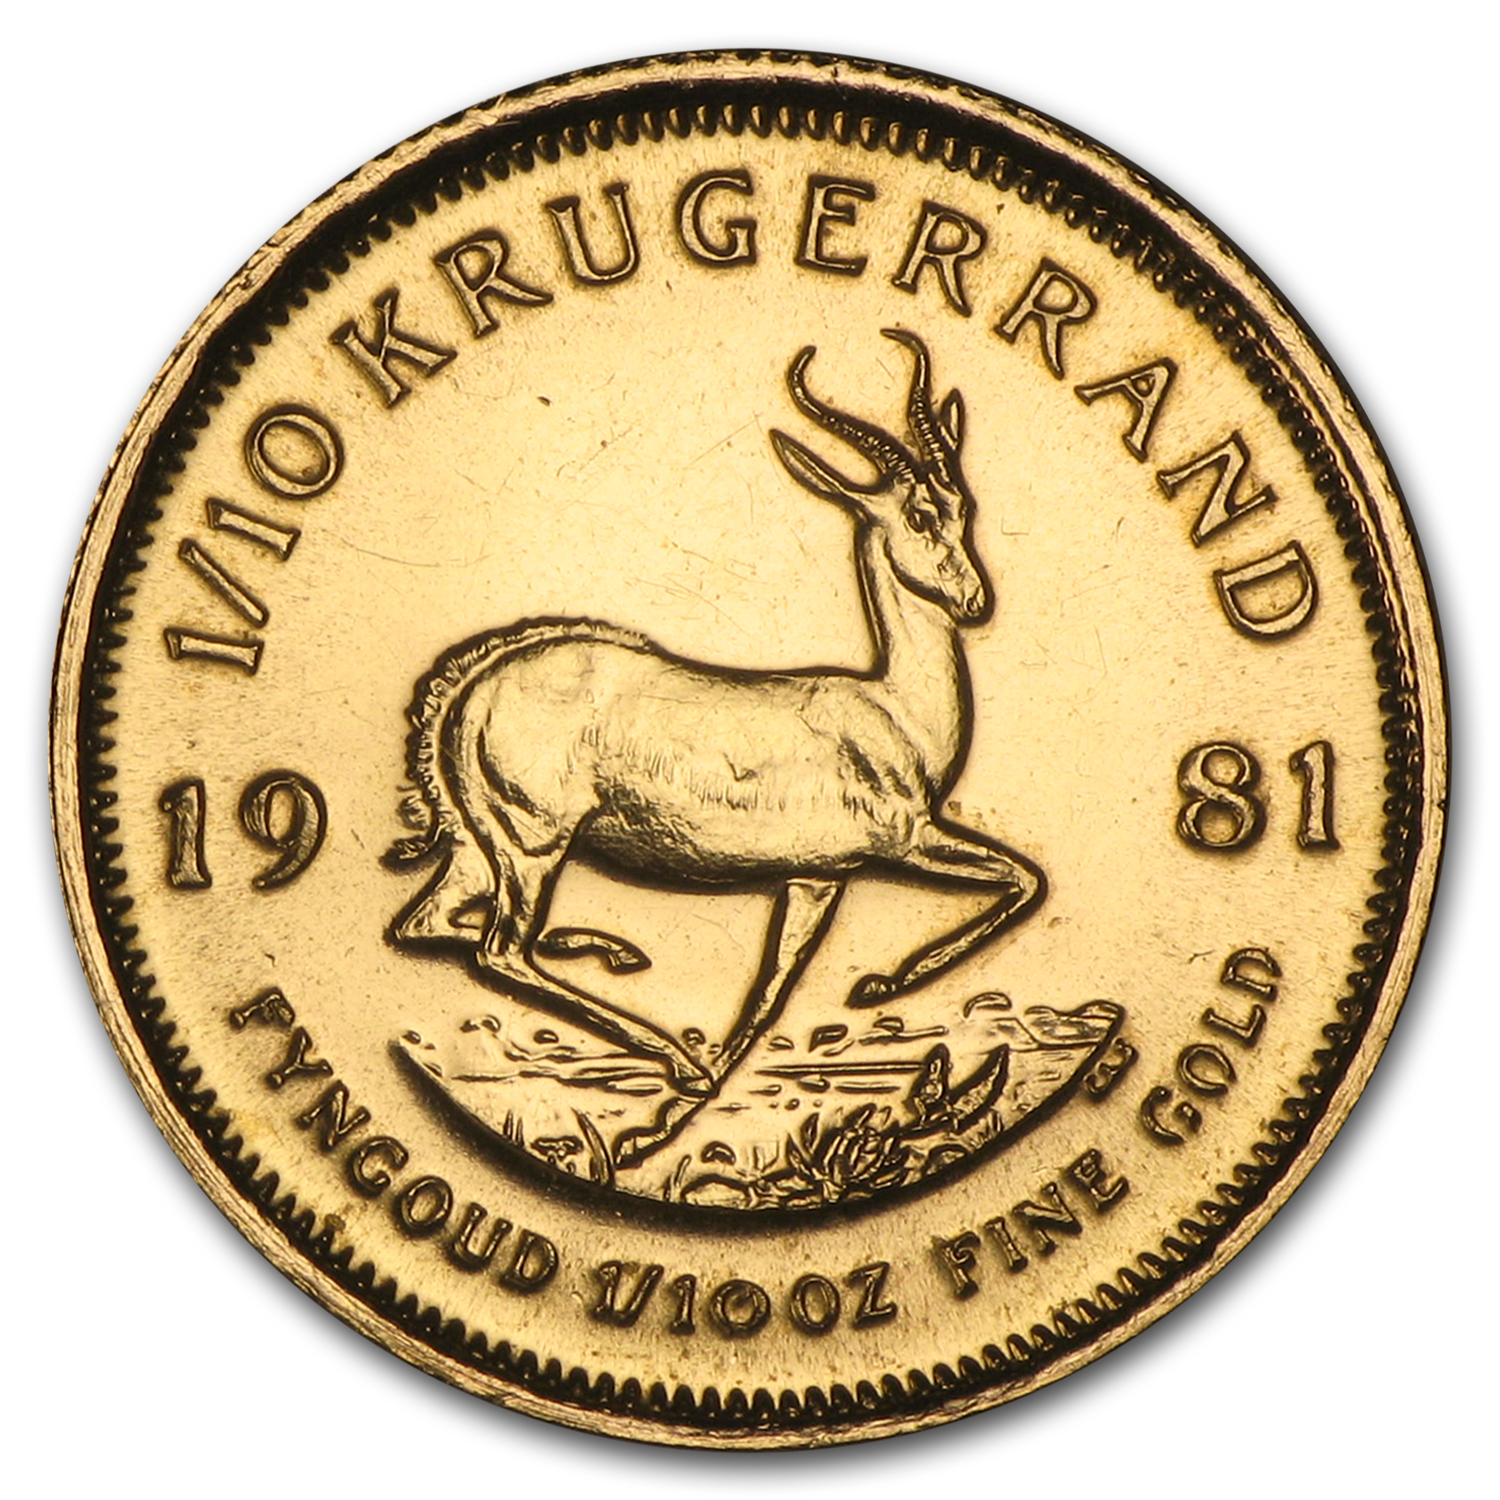 1981 South Africa 1/10 oz Gold Krugerrand